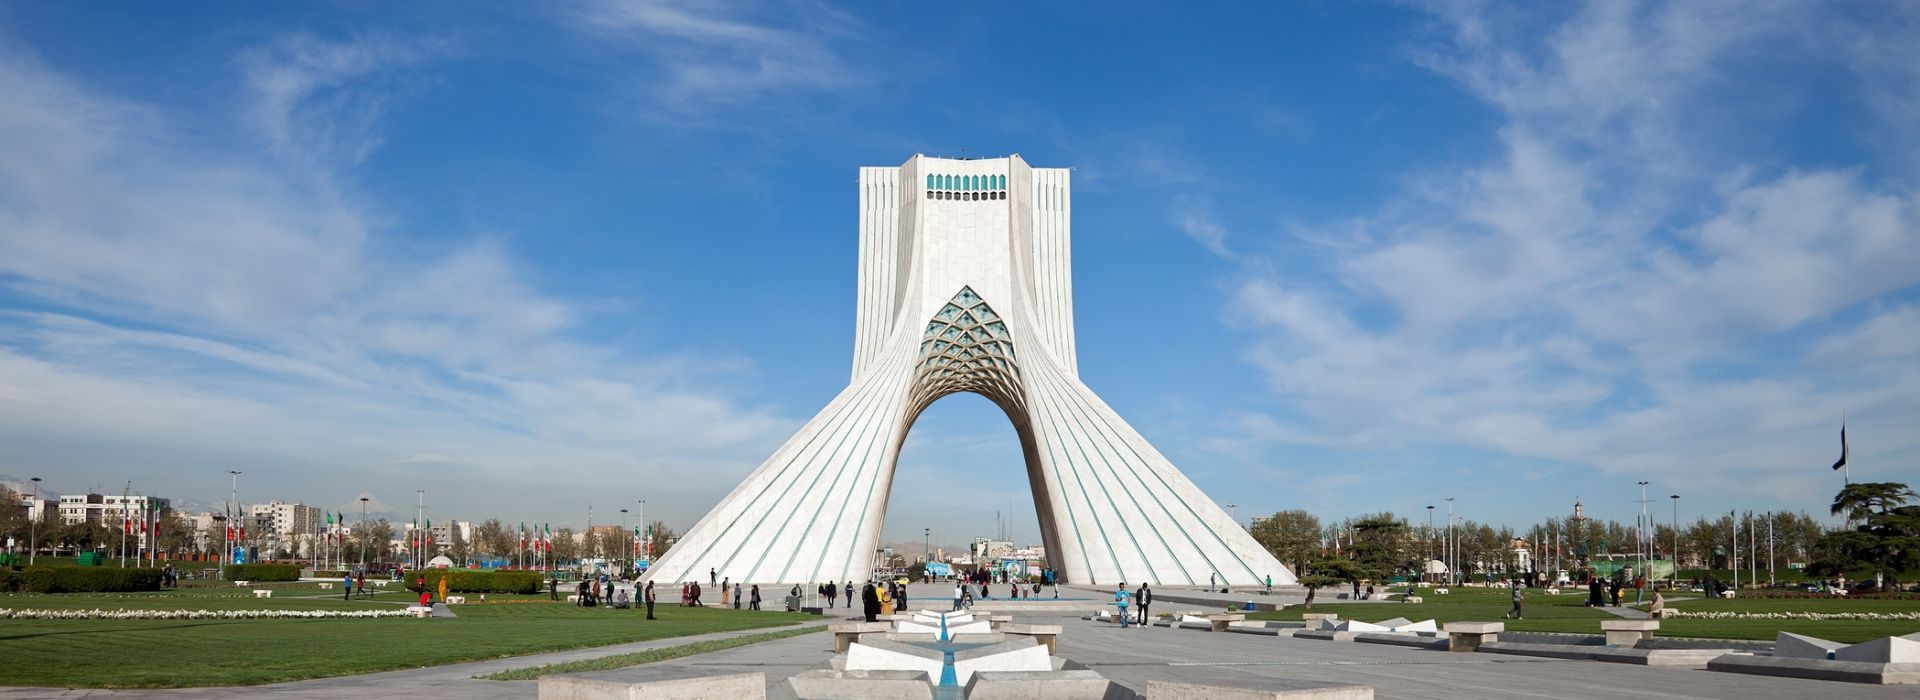 Countryside and village visits Tours in Shiraz